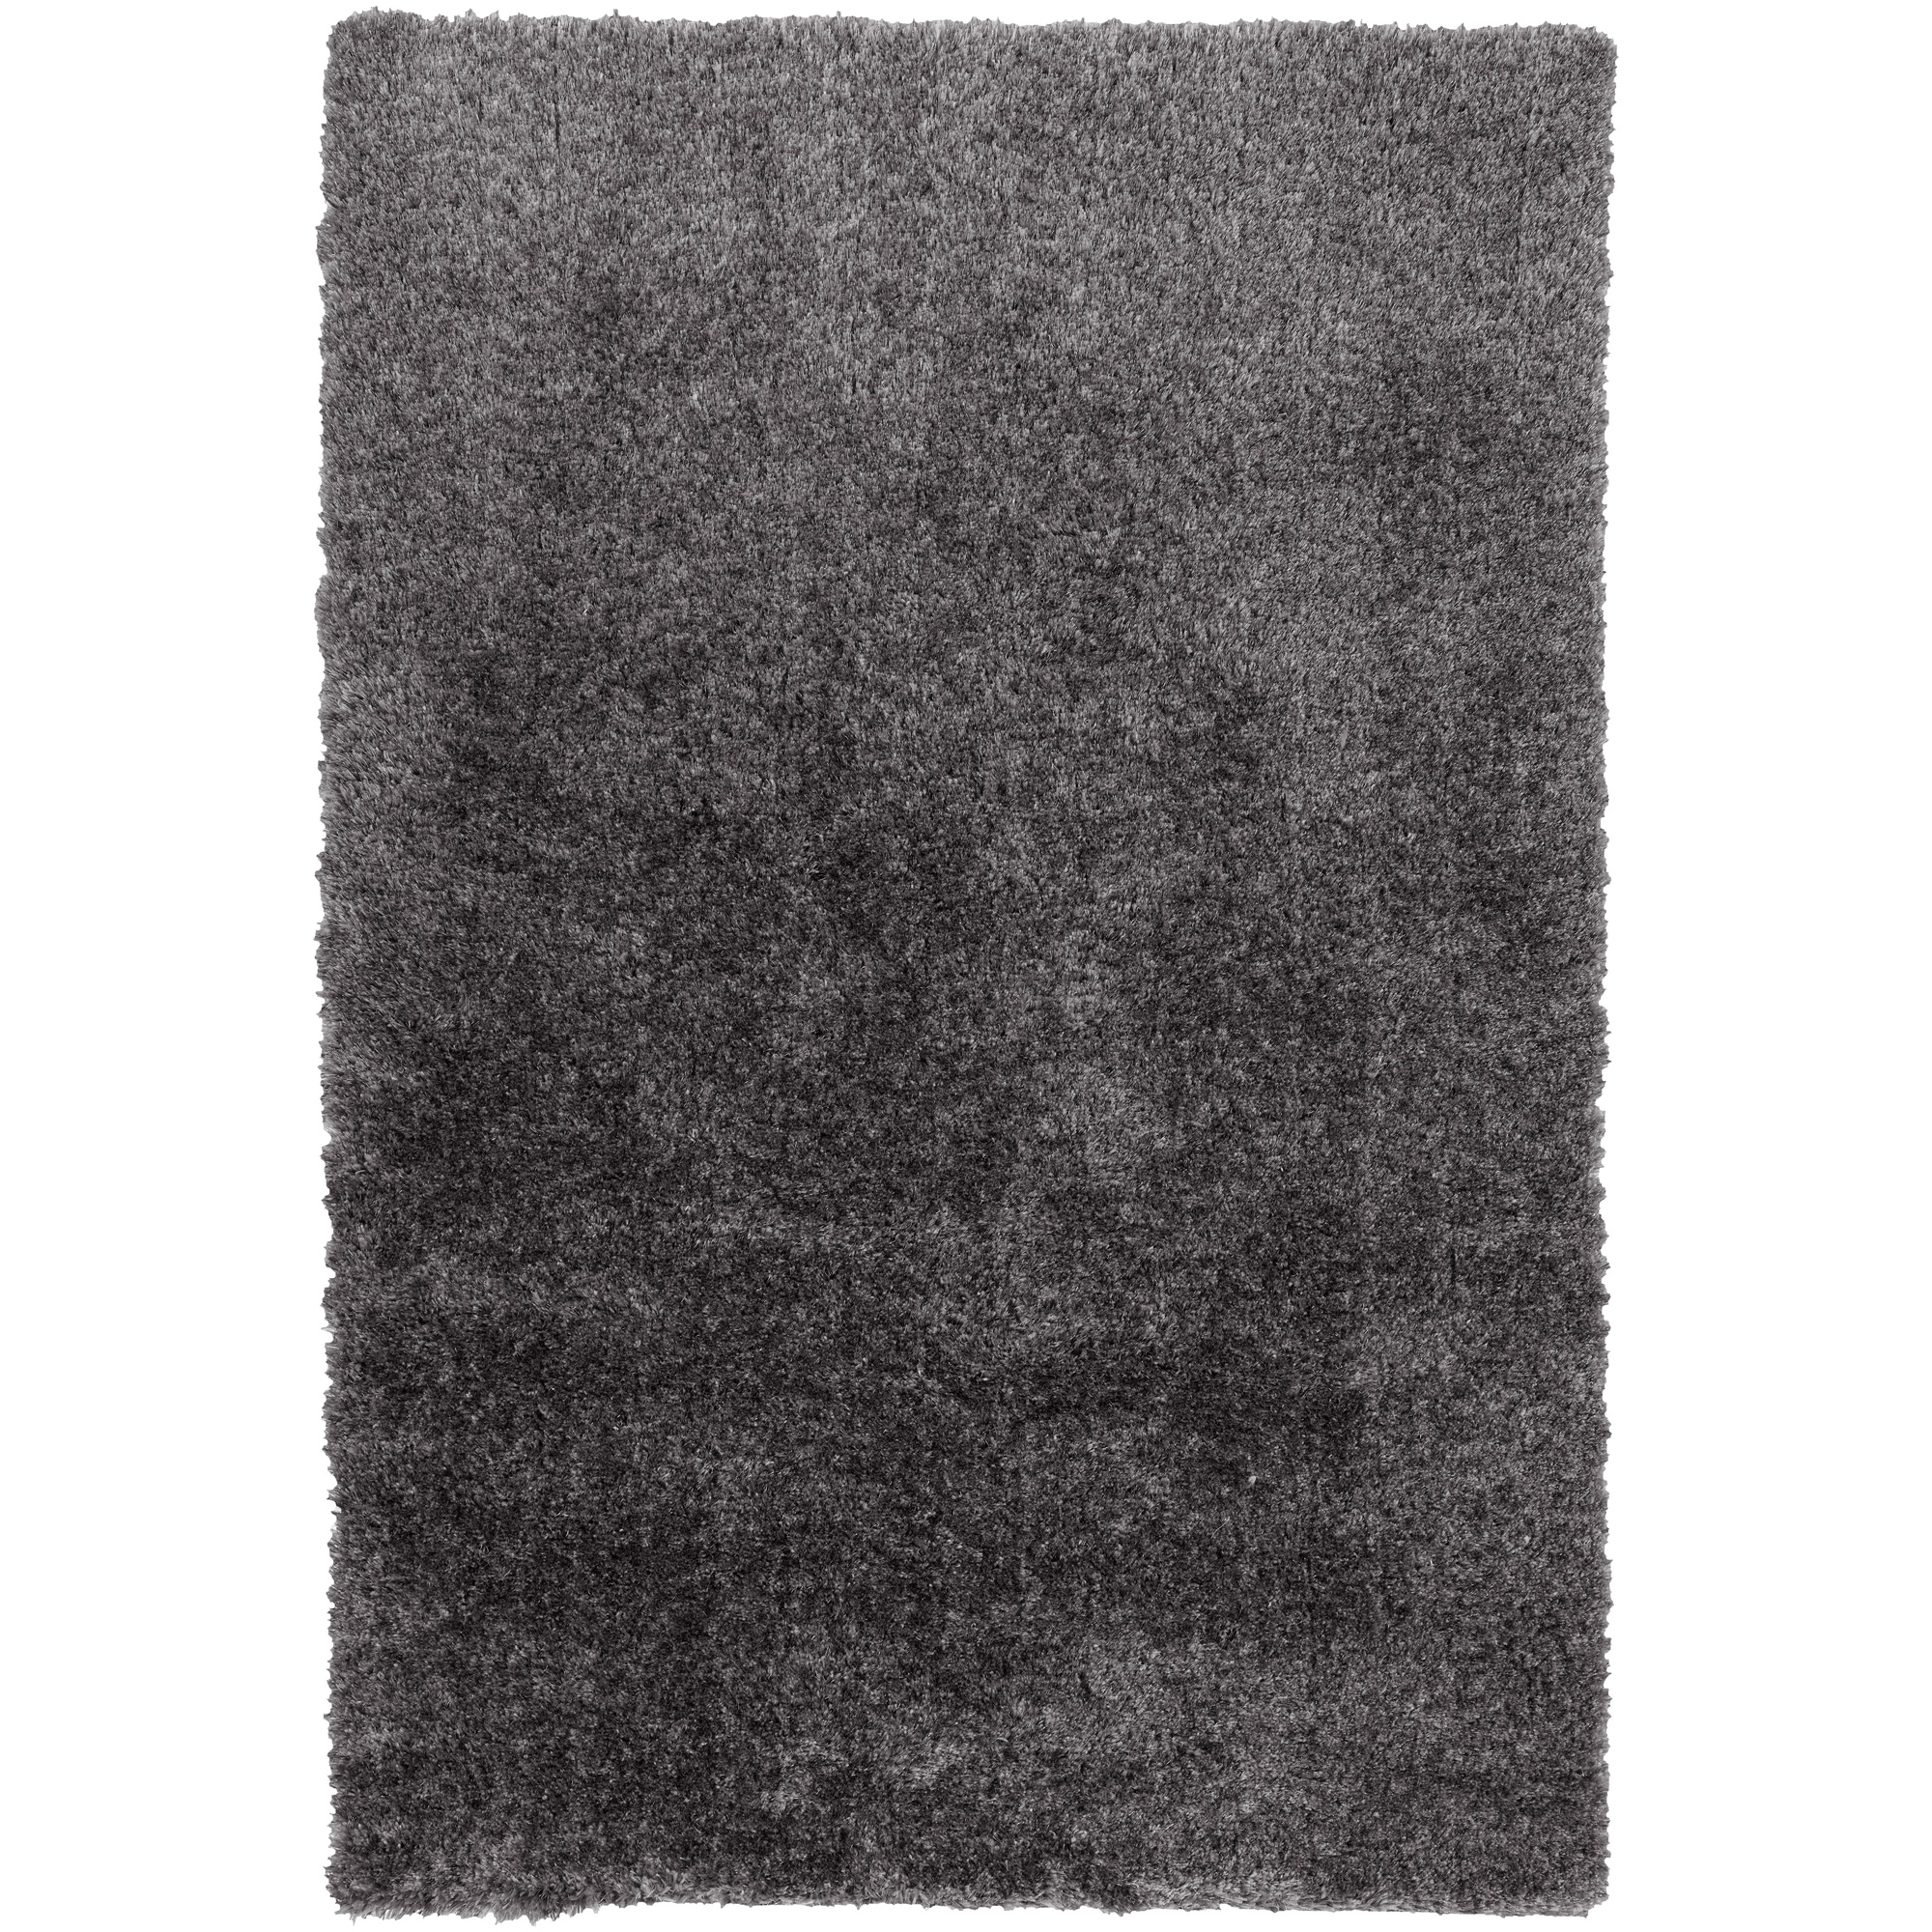 Dalyn Rug | Cabot Taupe 8x10 Area Rug